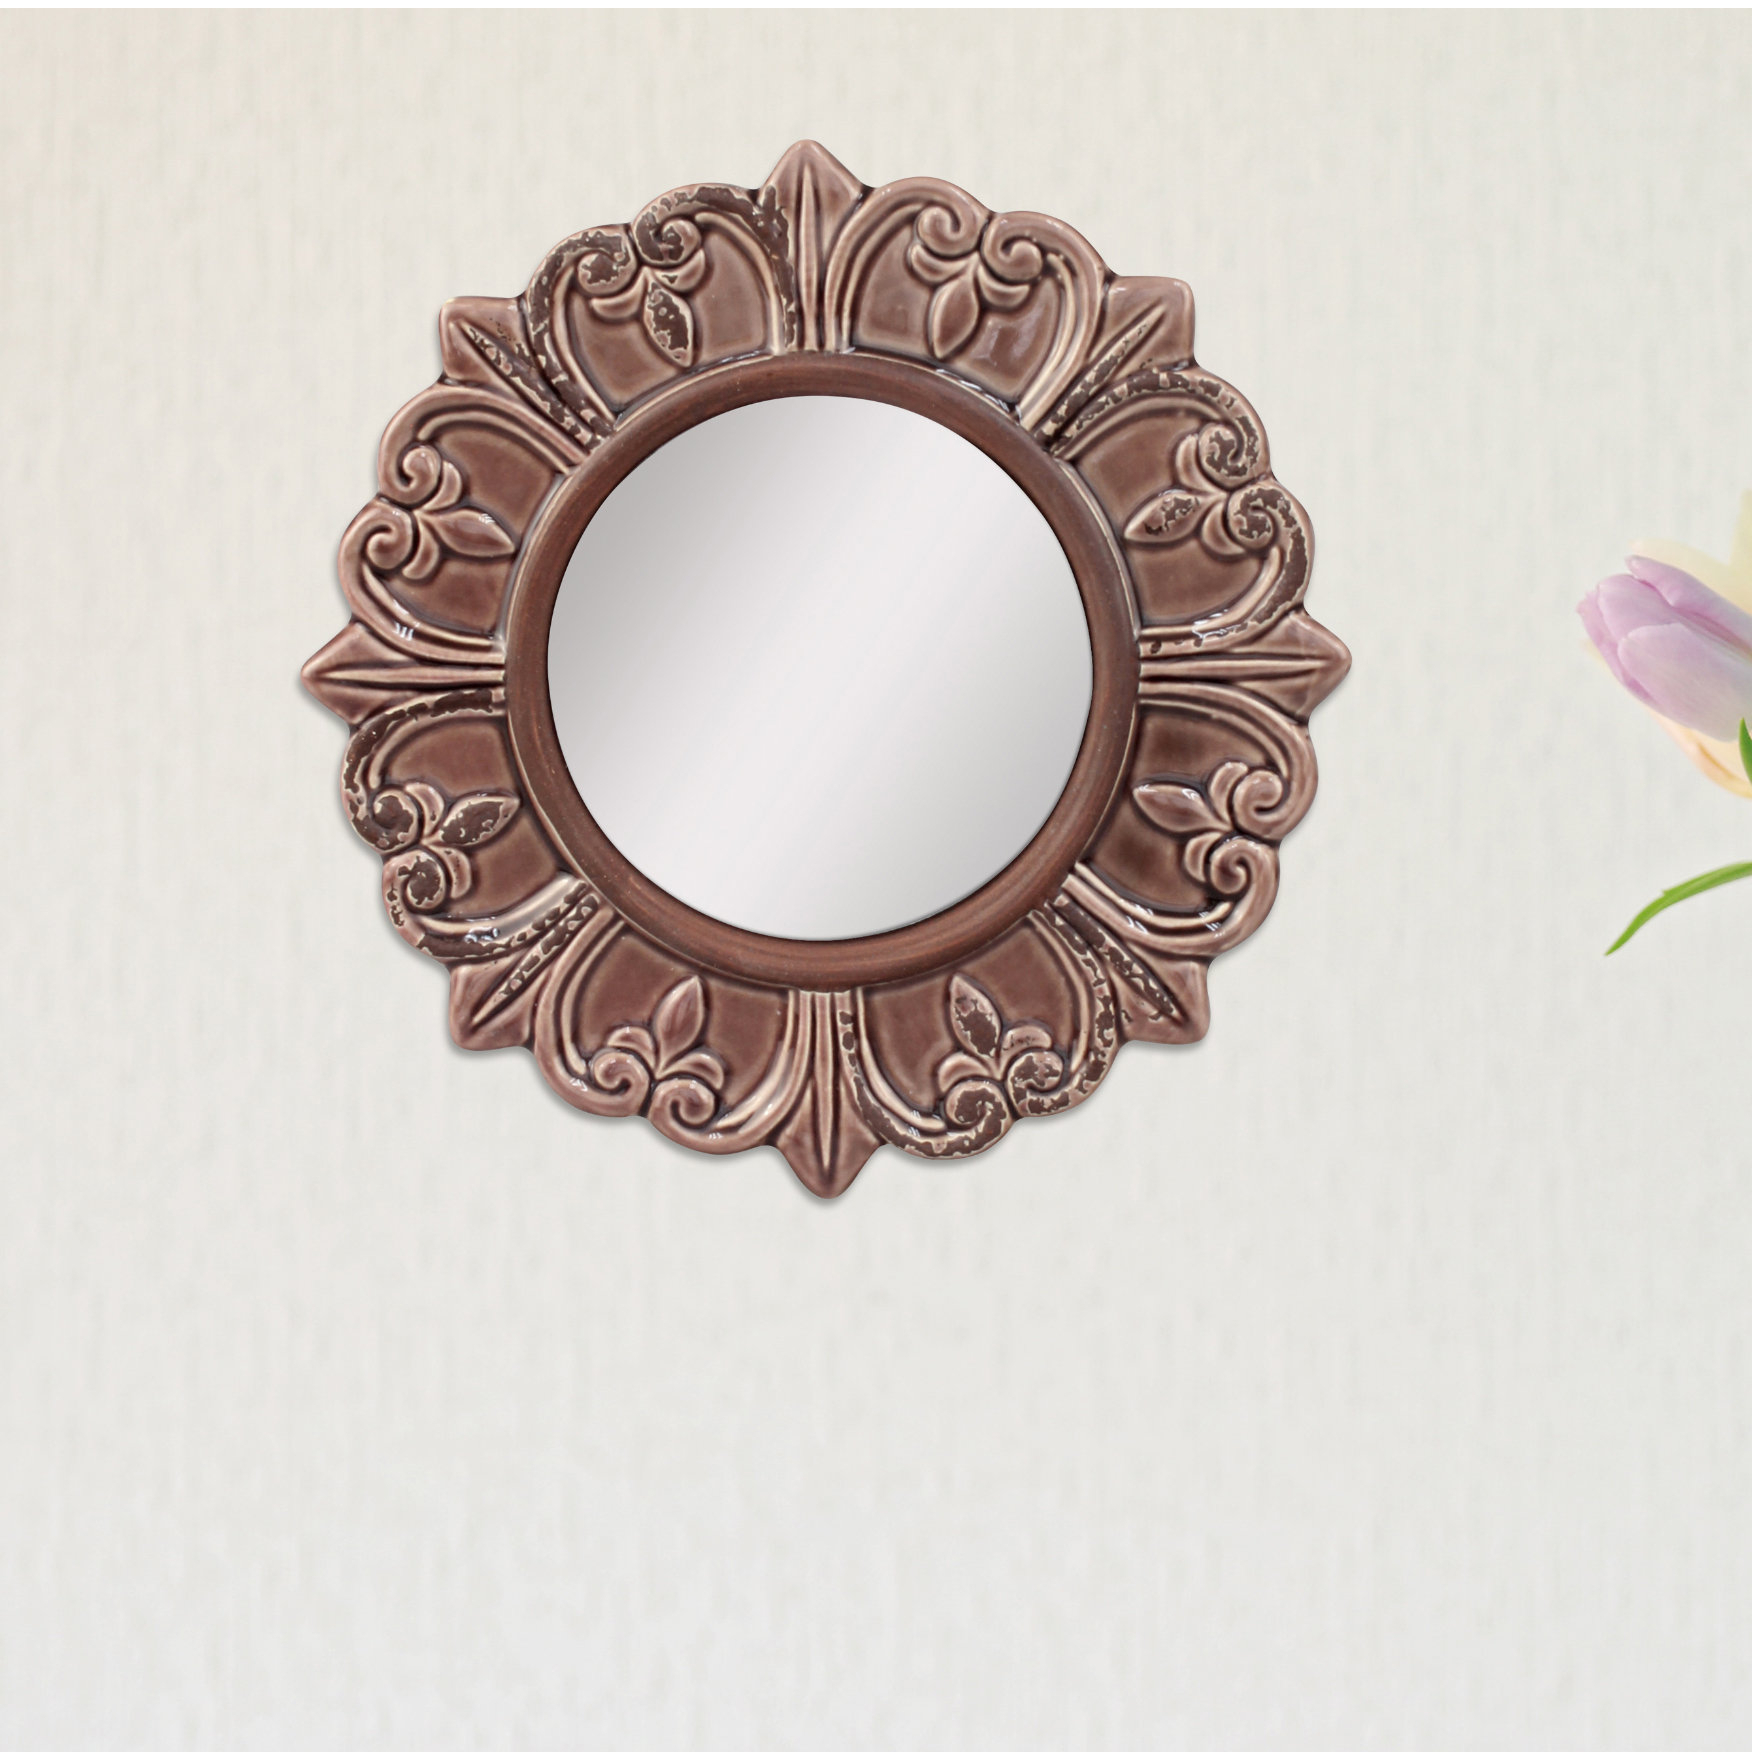 Waverly Place Round Distressed Wall Mirror Regarding Karn Vertical Round Resin Wall Mirrors (View 13 of 20)